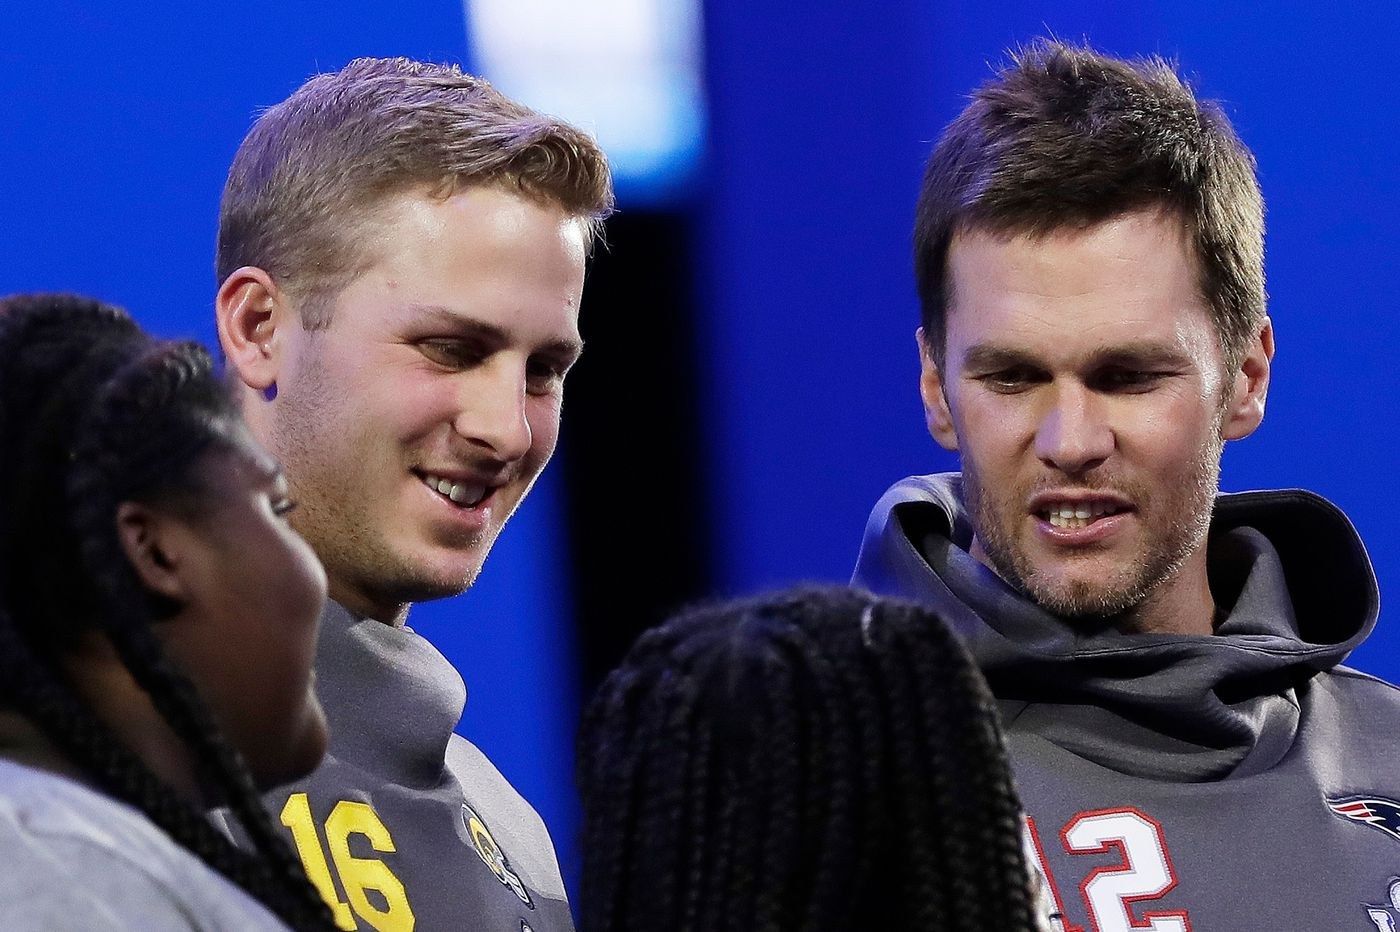 Patriots, Rams set to square off in Super Bowl LIII